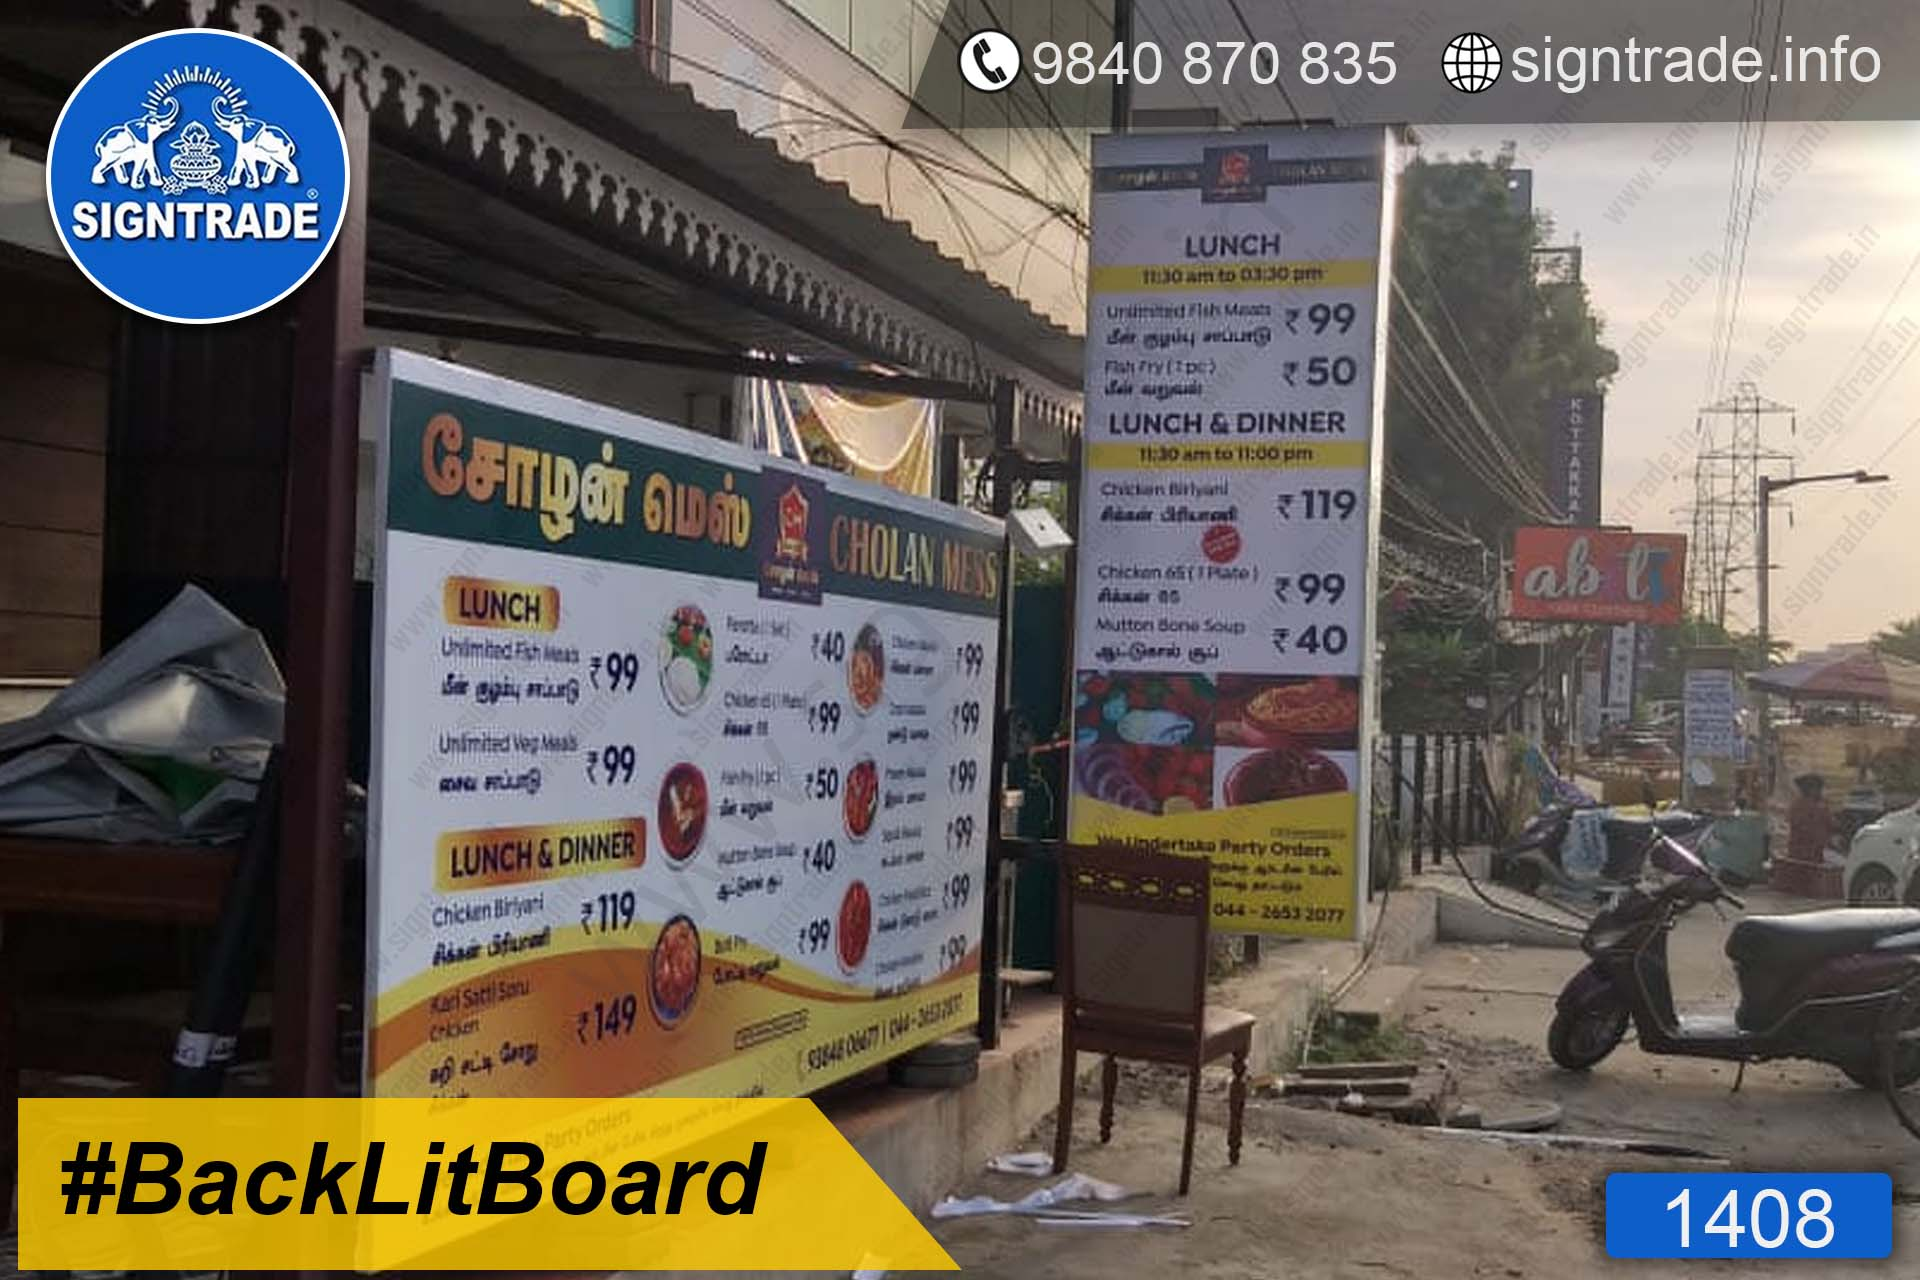 Cholan Mess - 1408, Flex Board, Backlit Flex Board, Star Backlit Flex Board, Backlit Flex Banners, Shop Front Flex Board, Shop Flex Board